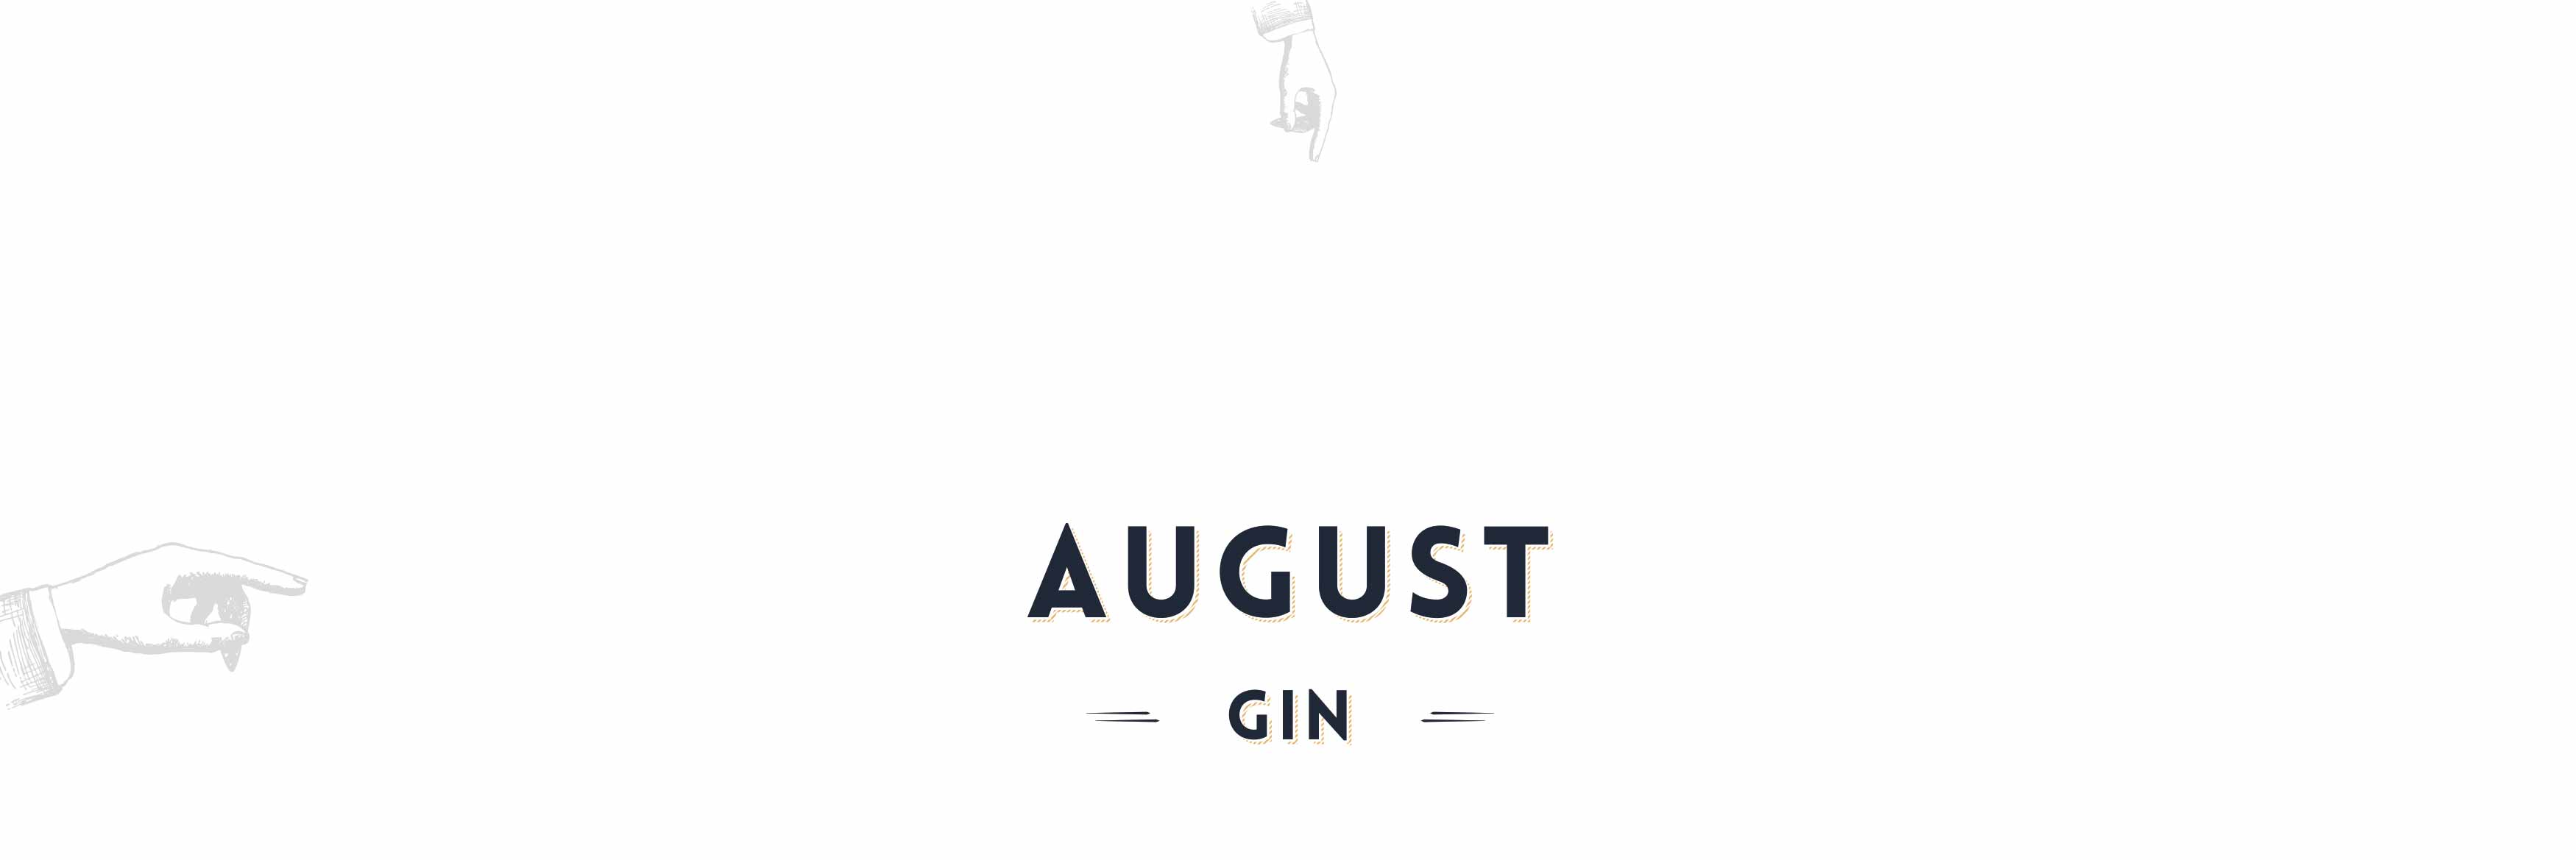 1-intro-logo-august-gin-augsburg-design-branding